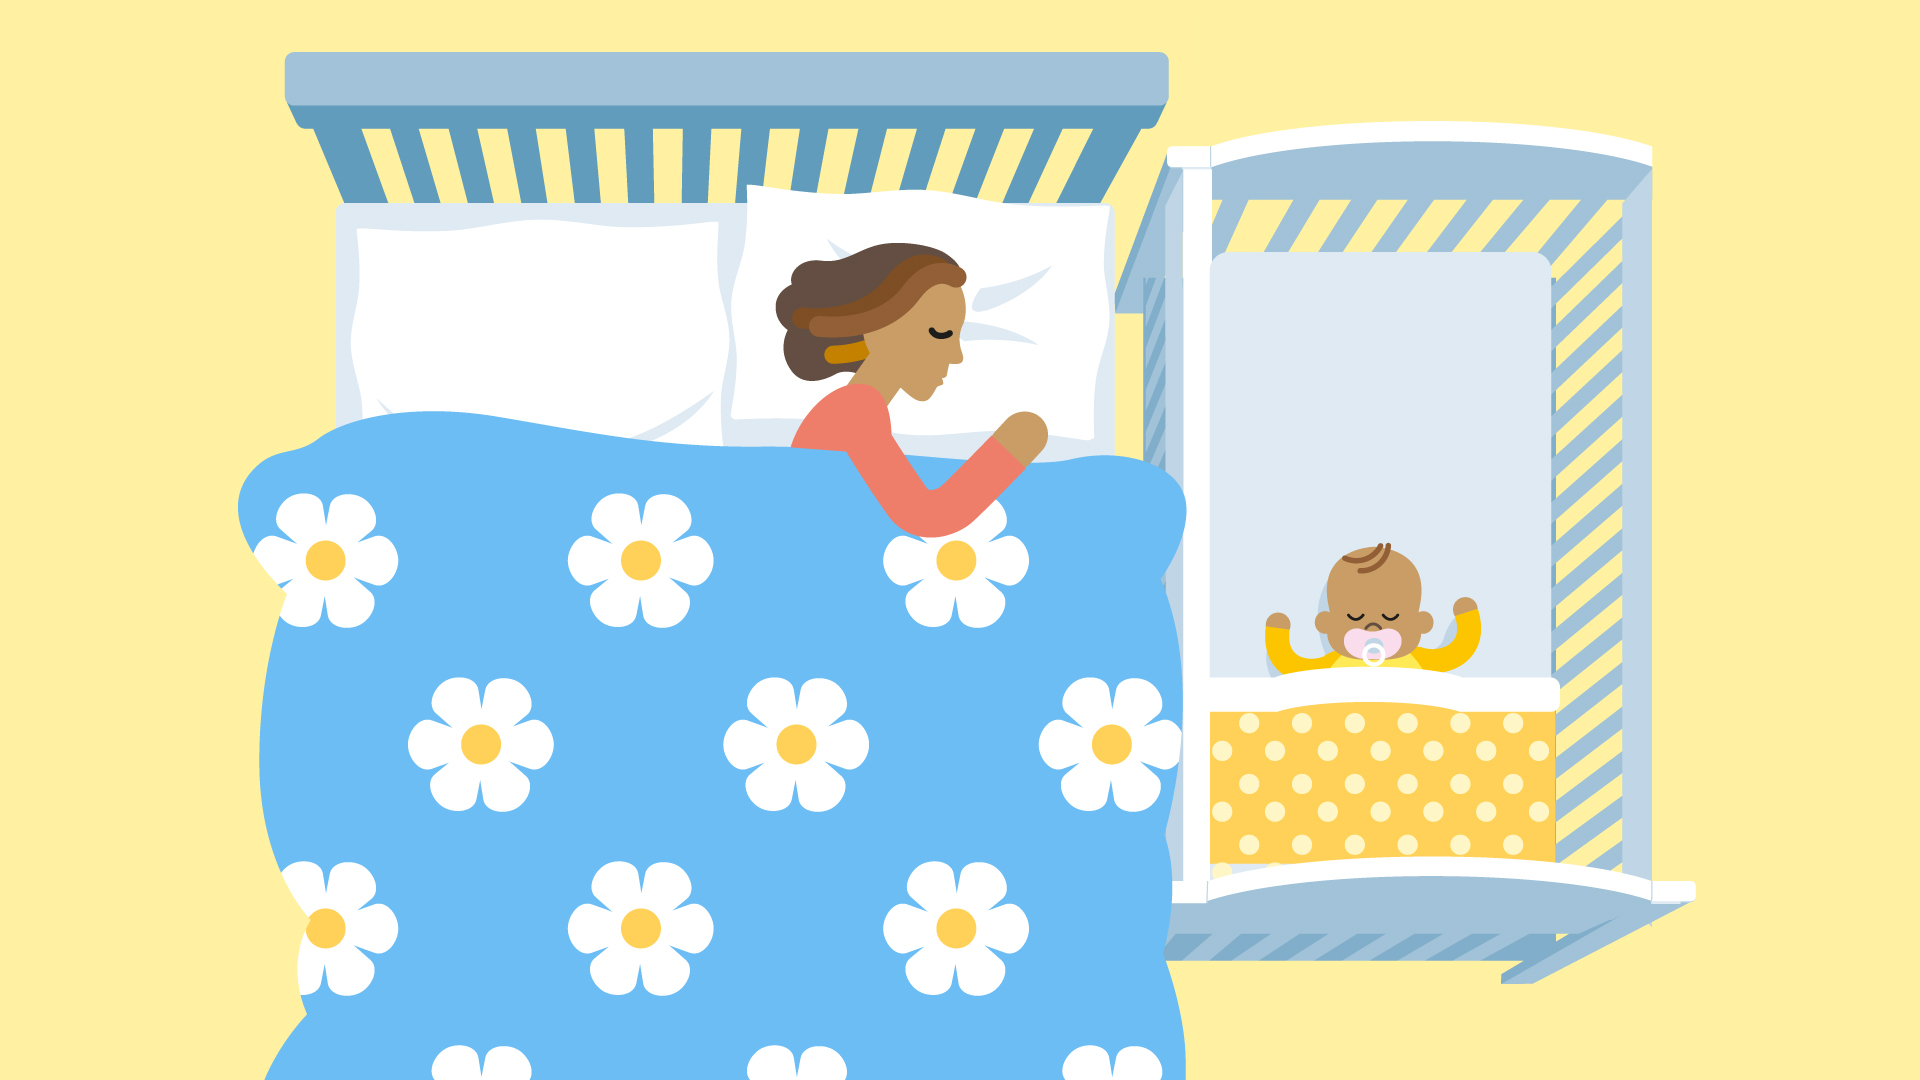 Parents clipart trust. Sharing a room with